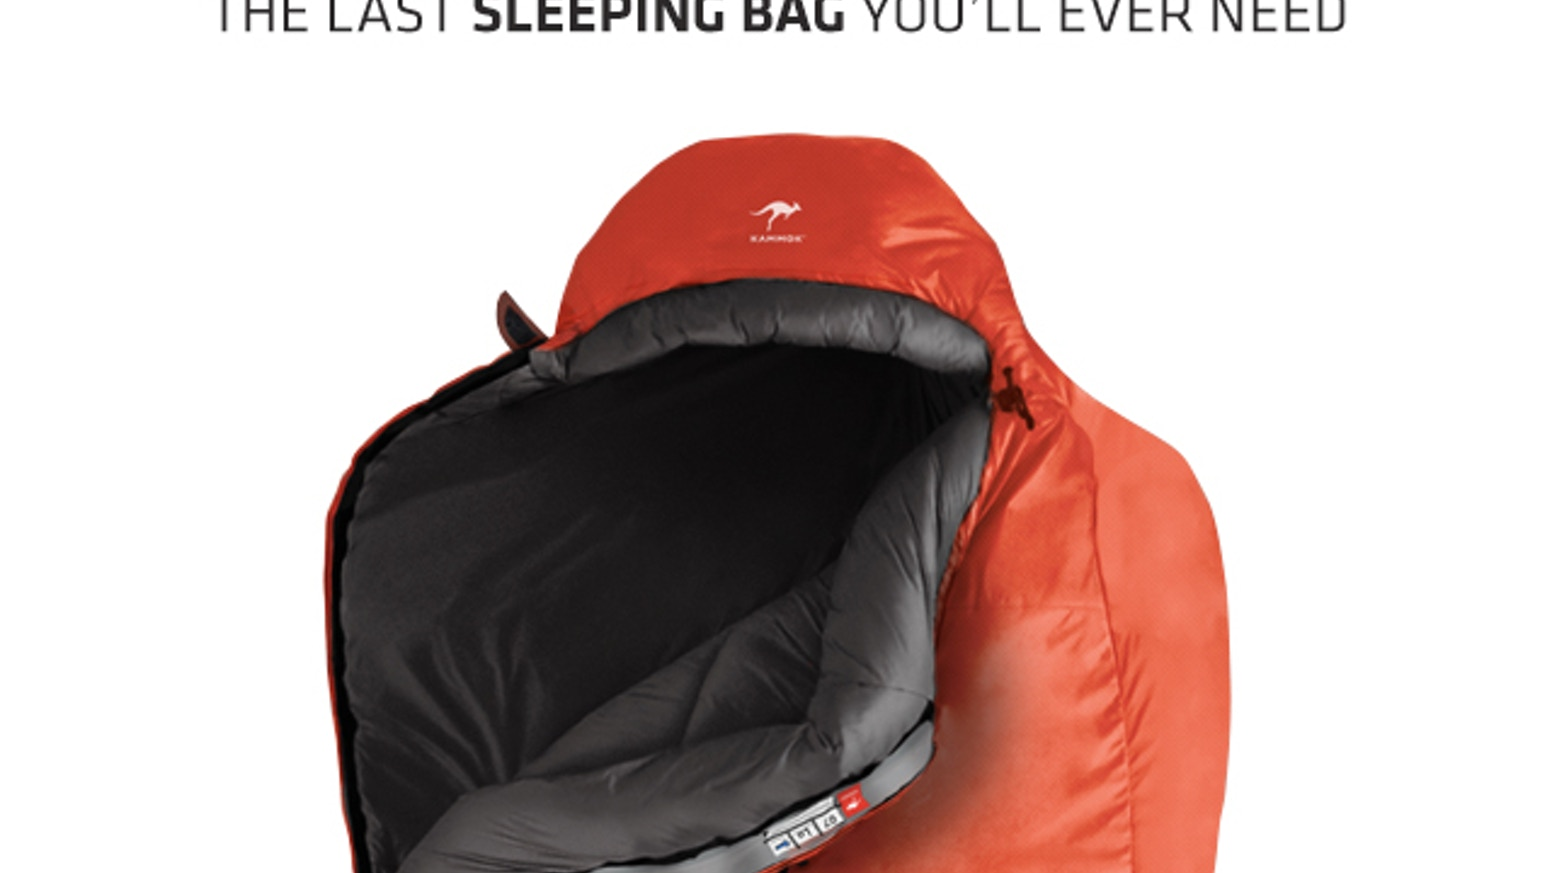 A fully customizable sleeping bag system that can adapt as your needs and environment changes. One sleeping bag, endless options.